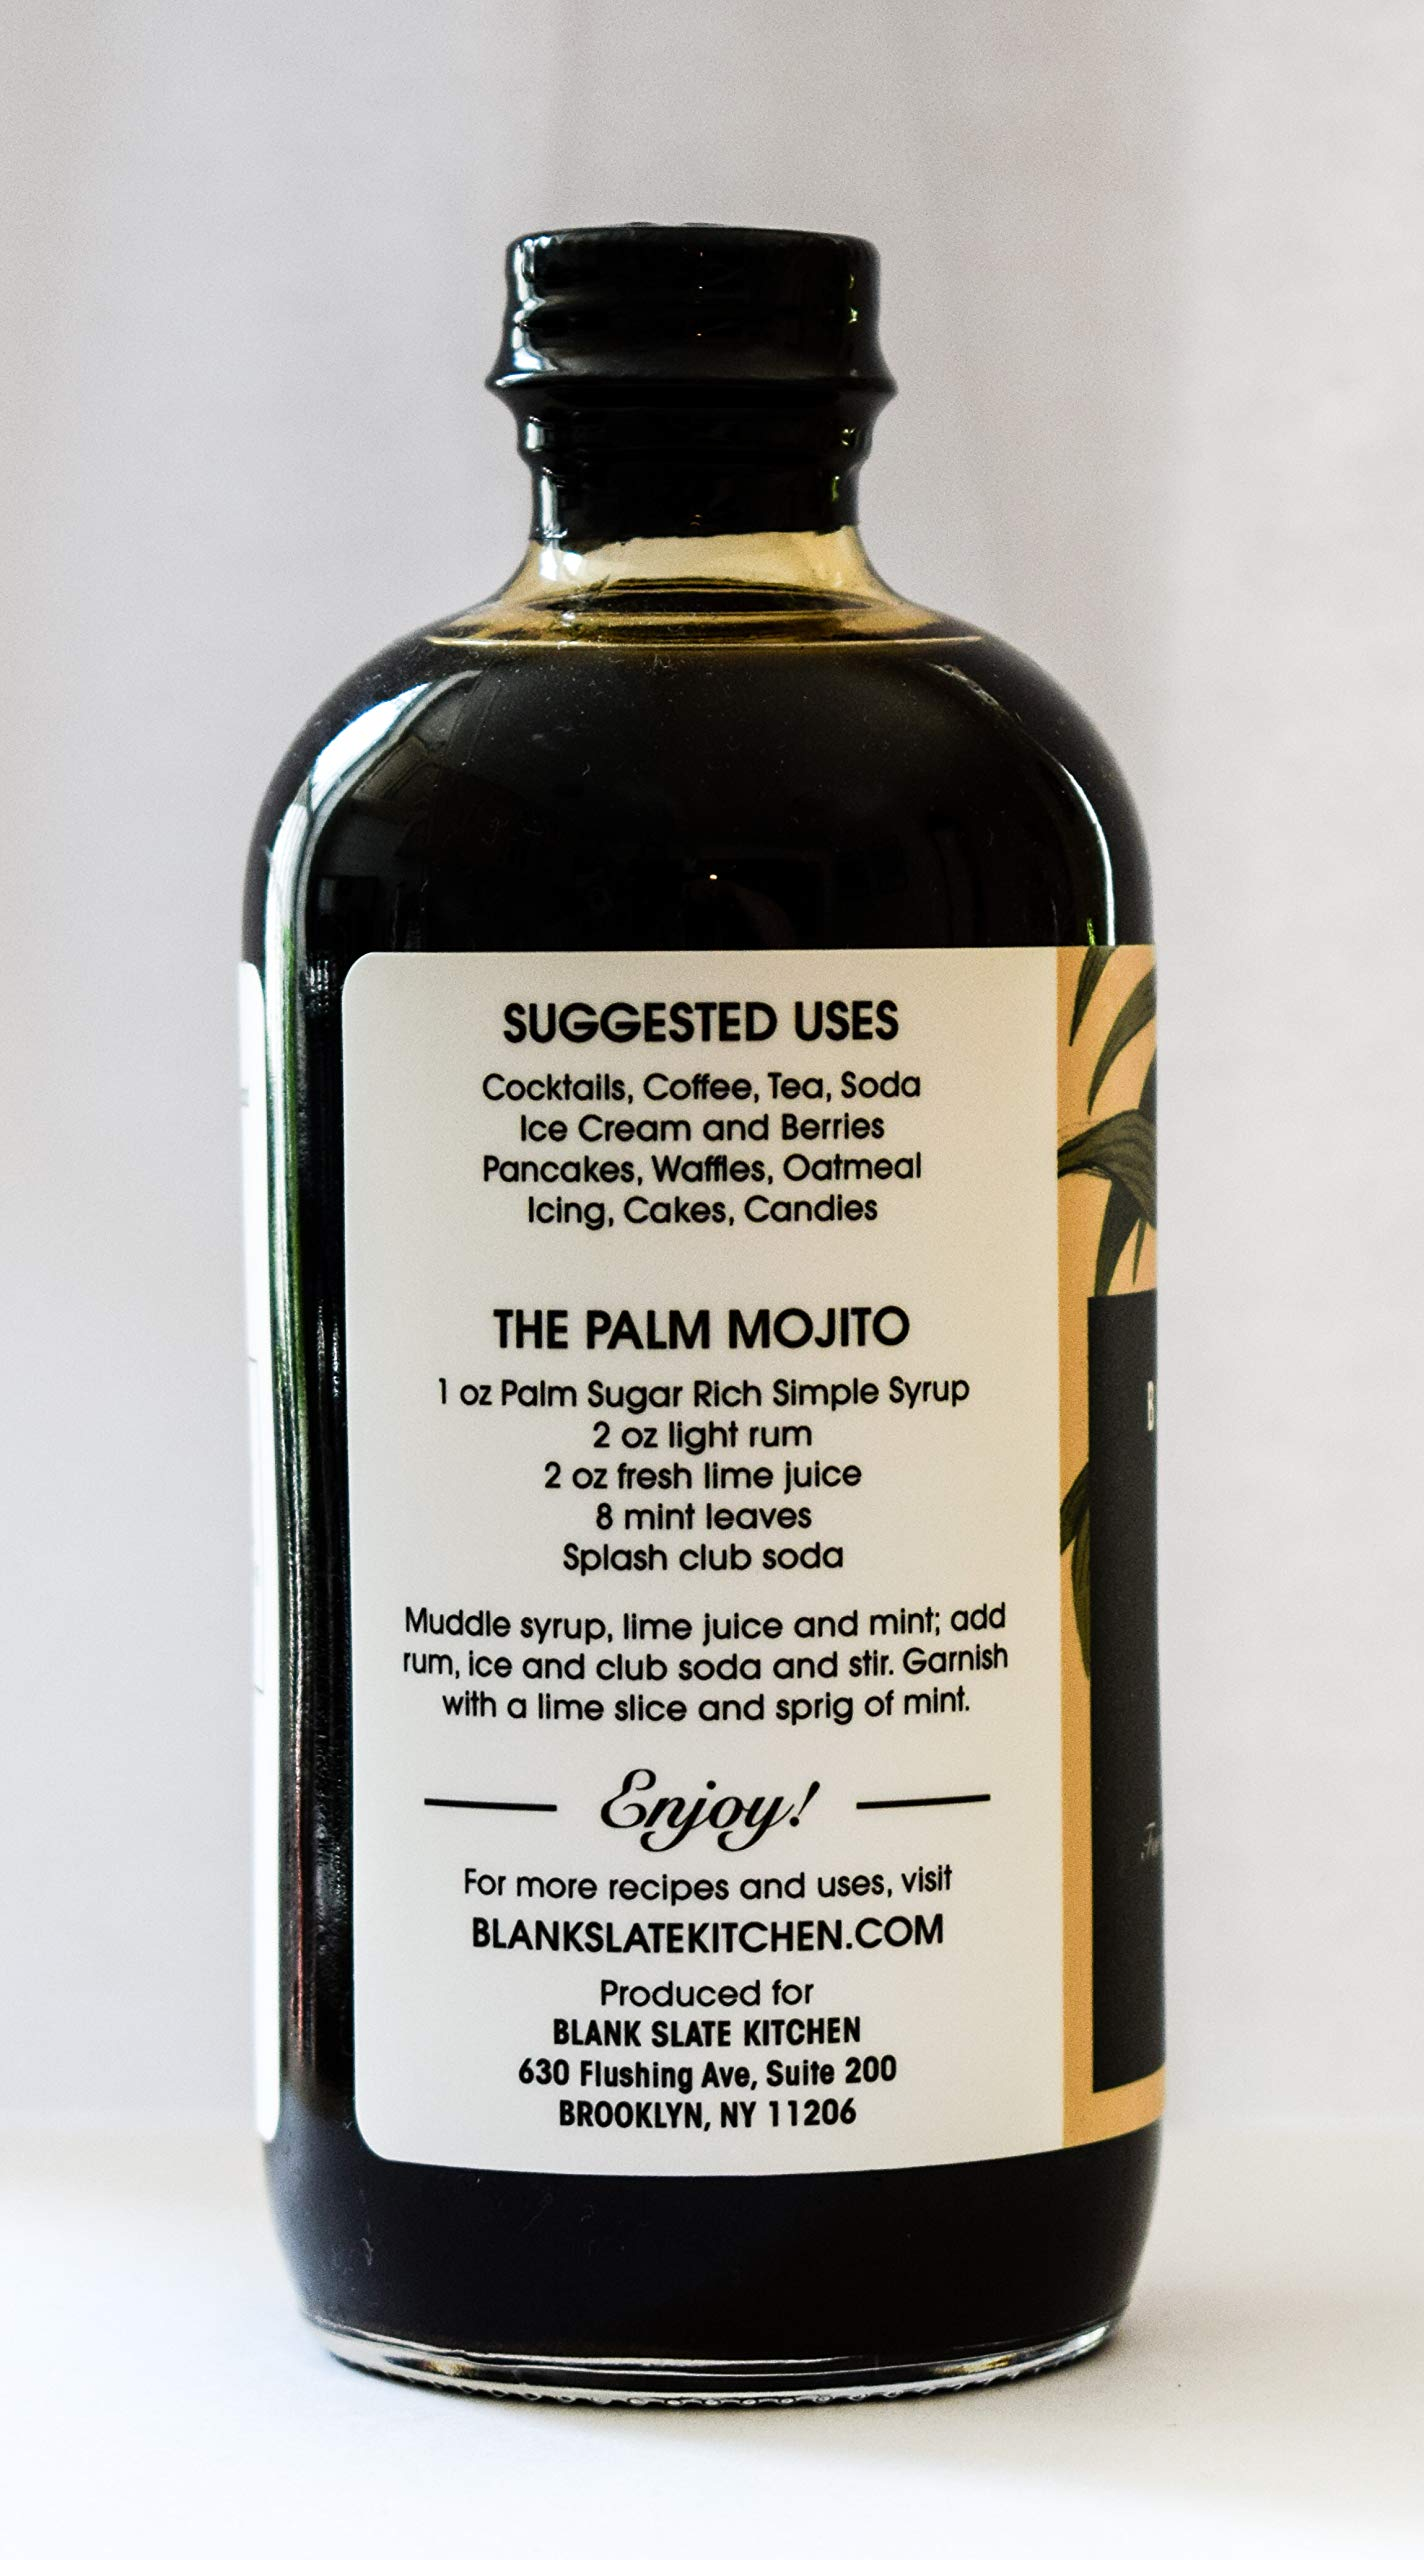 Palm Sugar Rich Simple Syrup | by Blank Slate Kitchen | 8 ounce | Cocktail Mixer or Dessert Topping by Blank Slate Kitchen